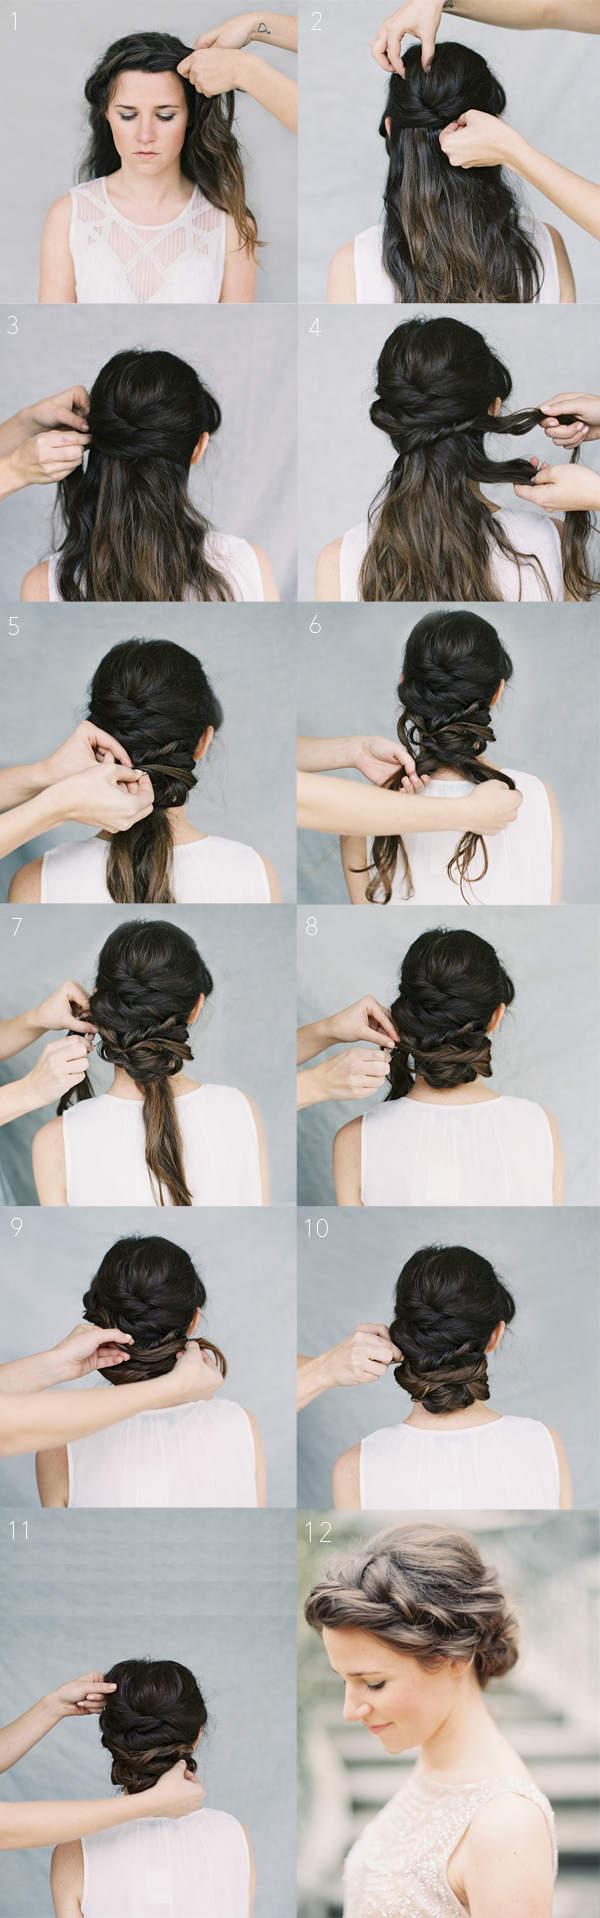 Hairstyles for Long Hair Step by Step-21